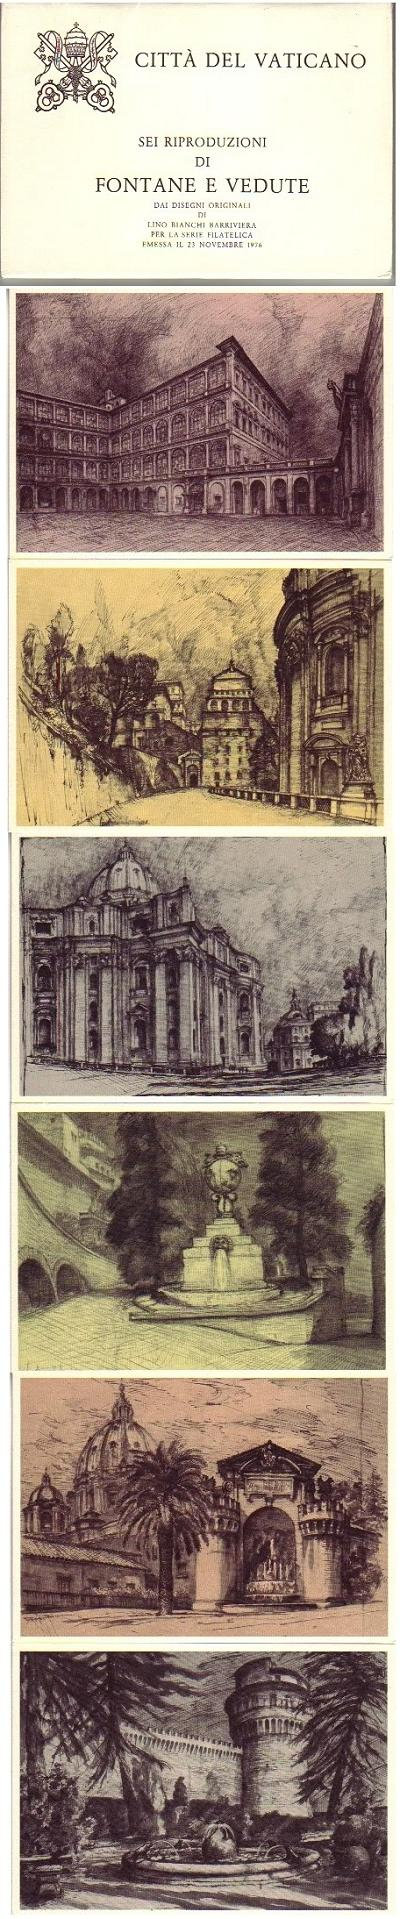 1978 Postcards Fountains and Views of Vatican City Photo